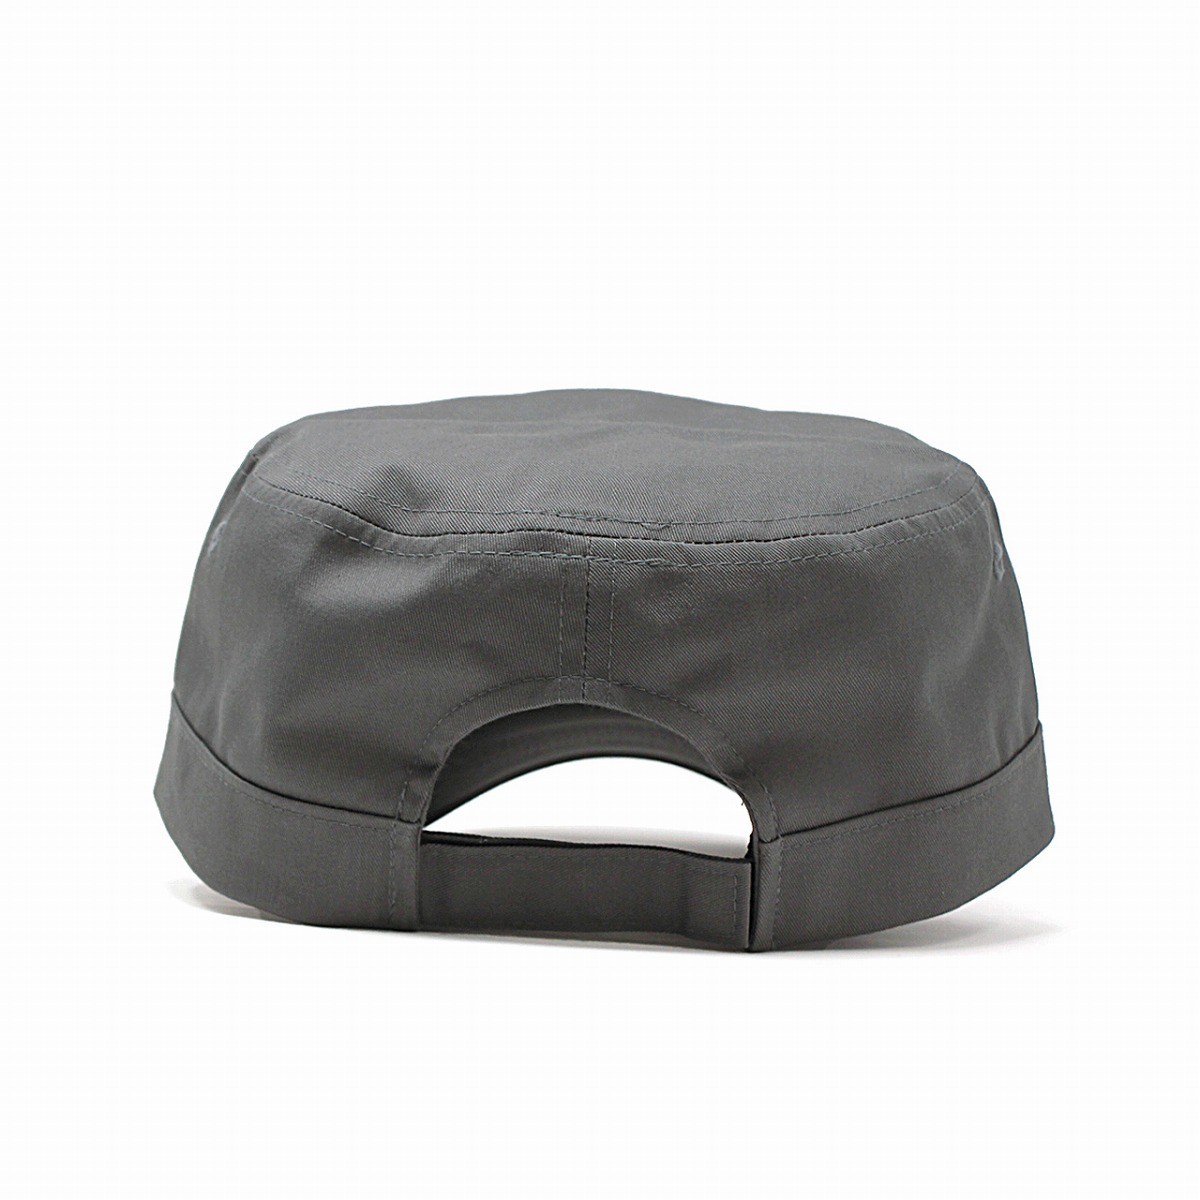 Summer summer cap outdoor gray [cadet cap] that the size big adjustable  size cap sports coordinates adjustable size magic tape size adjustment that